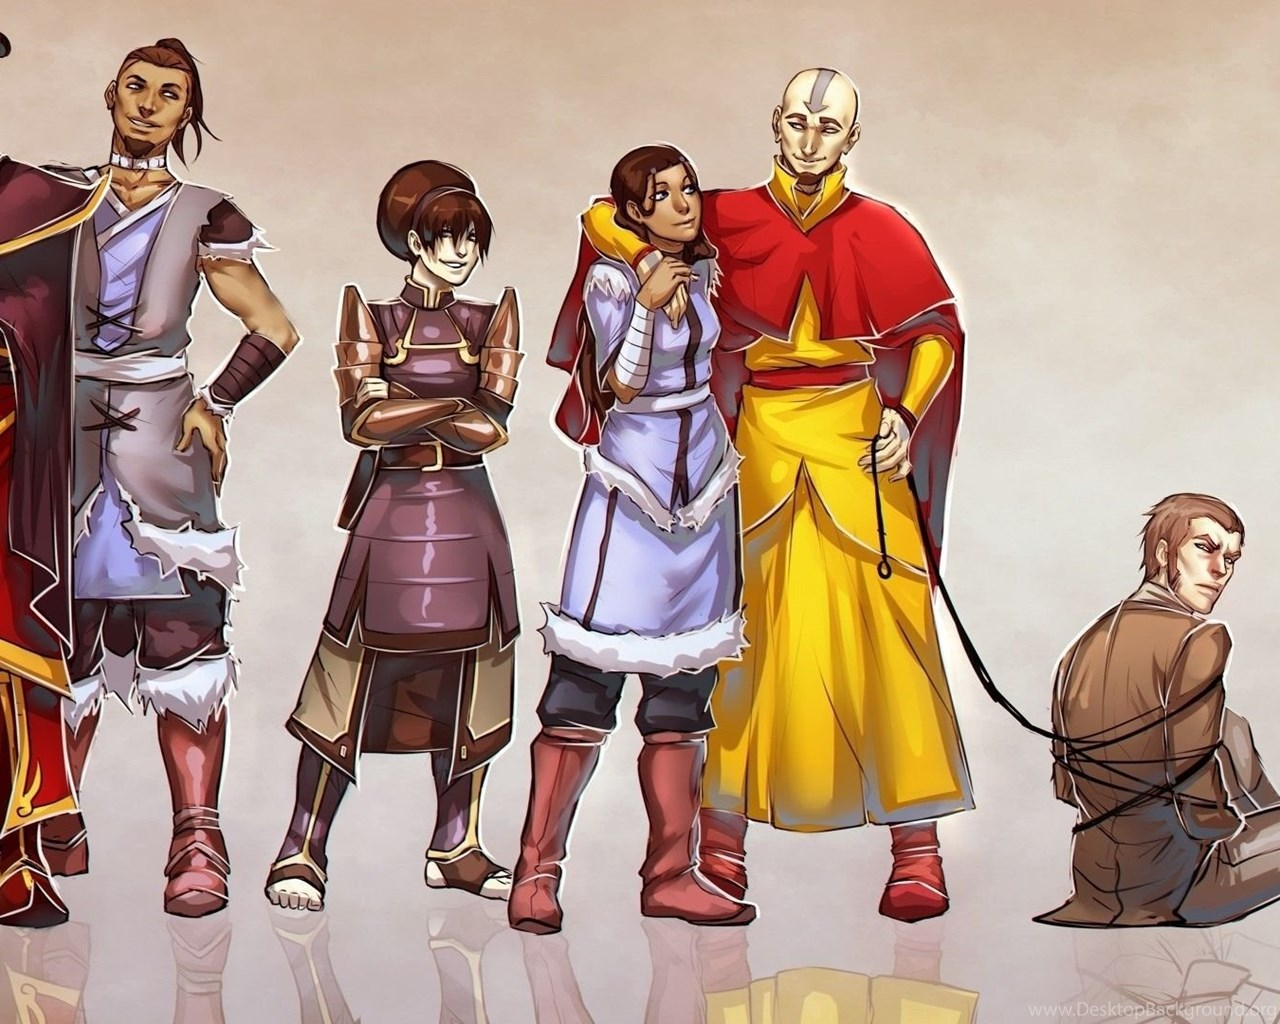 Avatar The Last Airbender Wallpapers Free Wide Hd Wallpapers